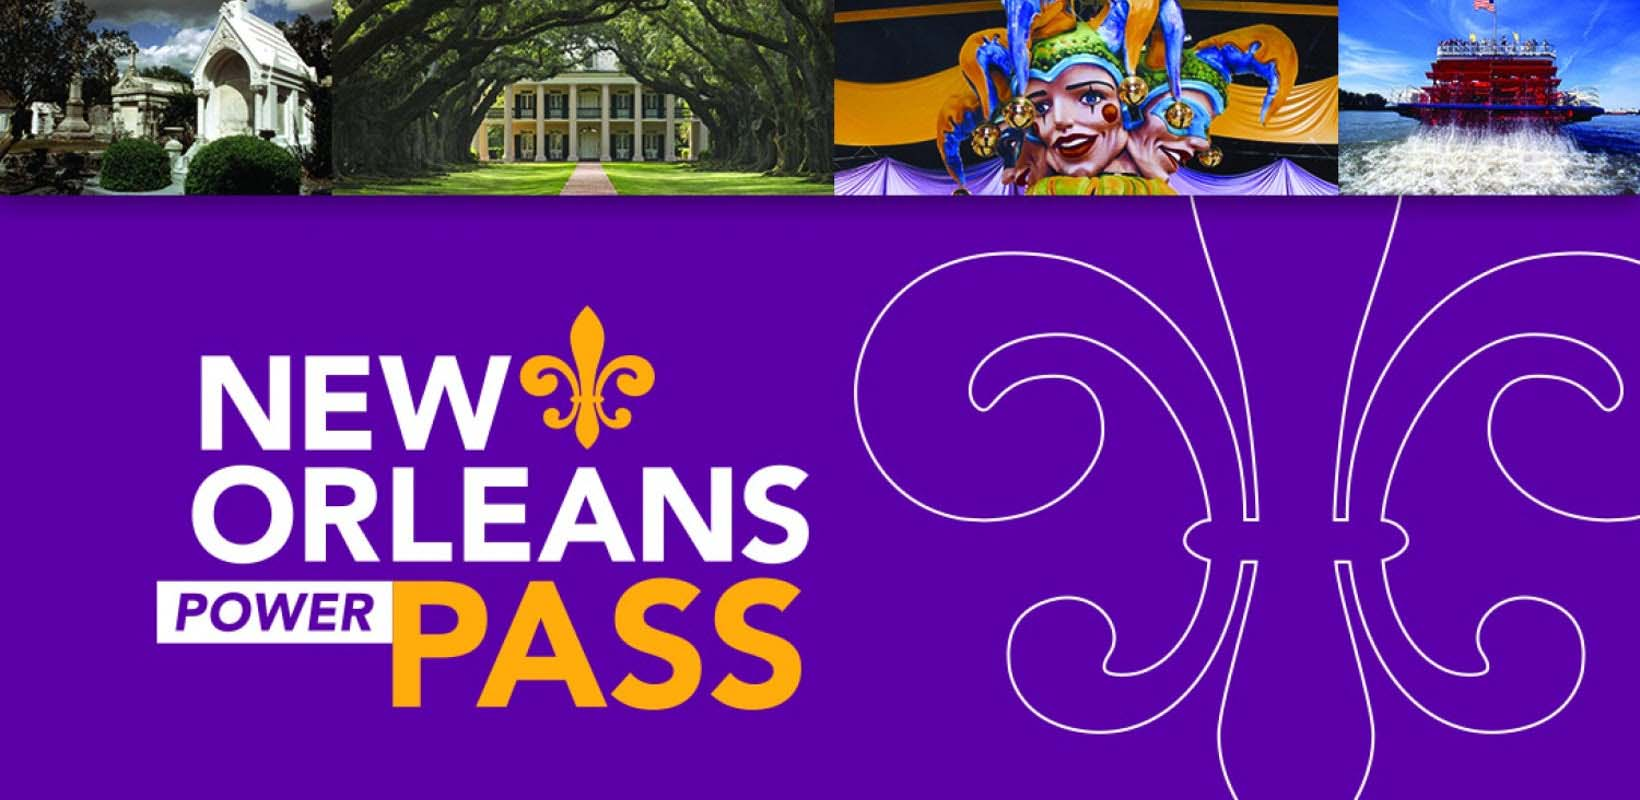 New Orleans Pass: free admission to sights and attractions